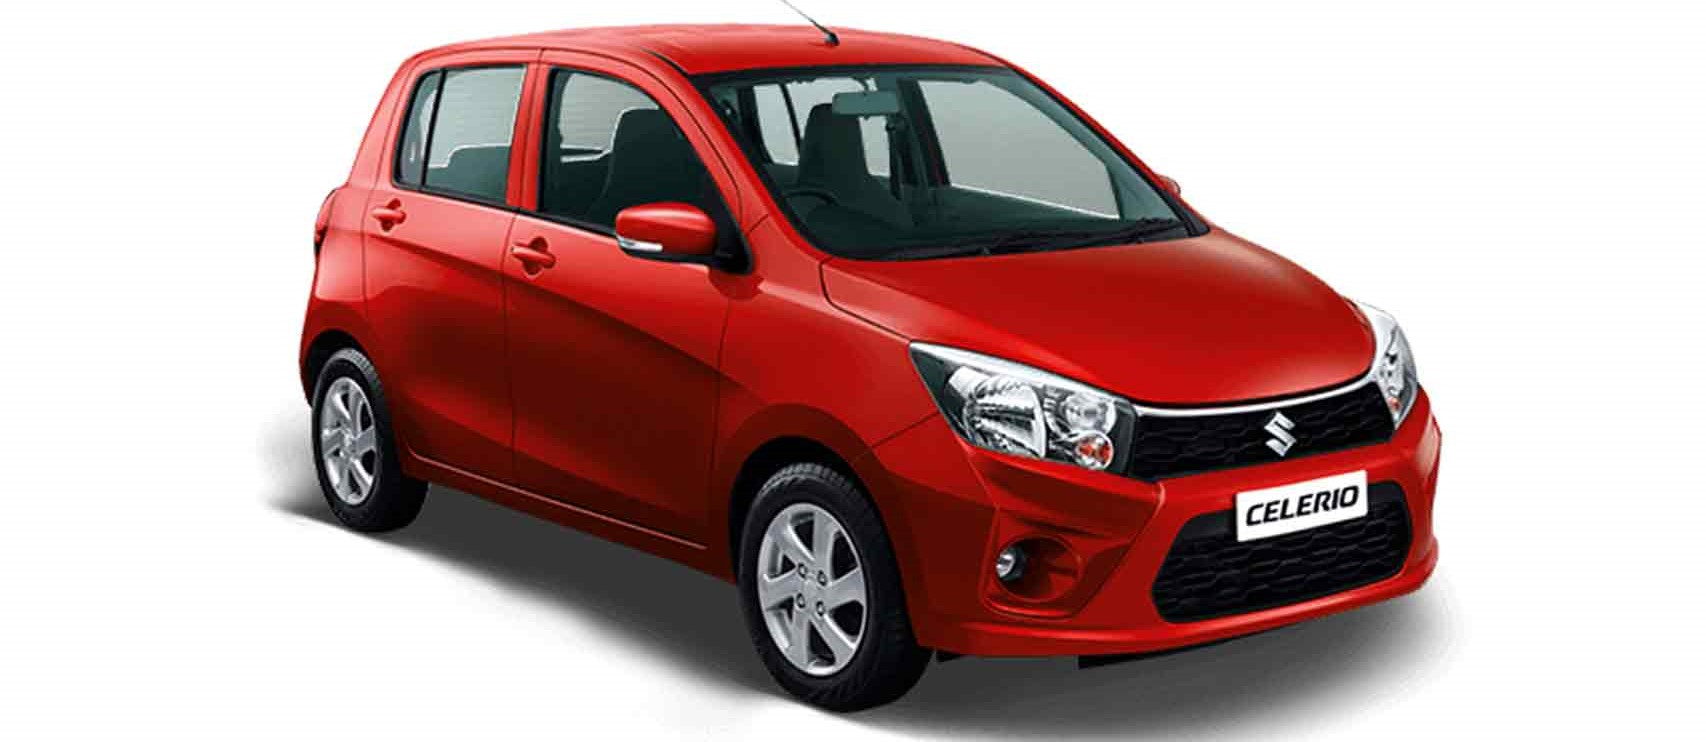 maruti-suzuki-celerio-affordable-automatic-car